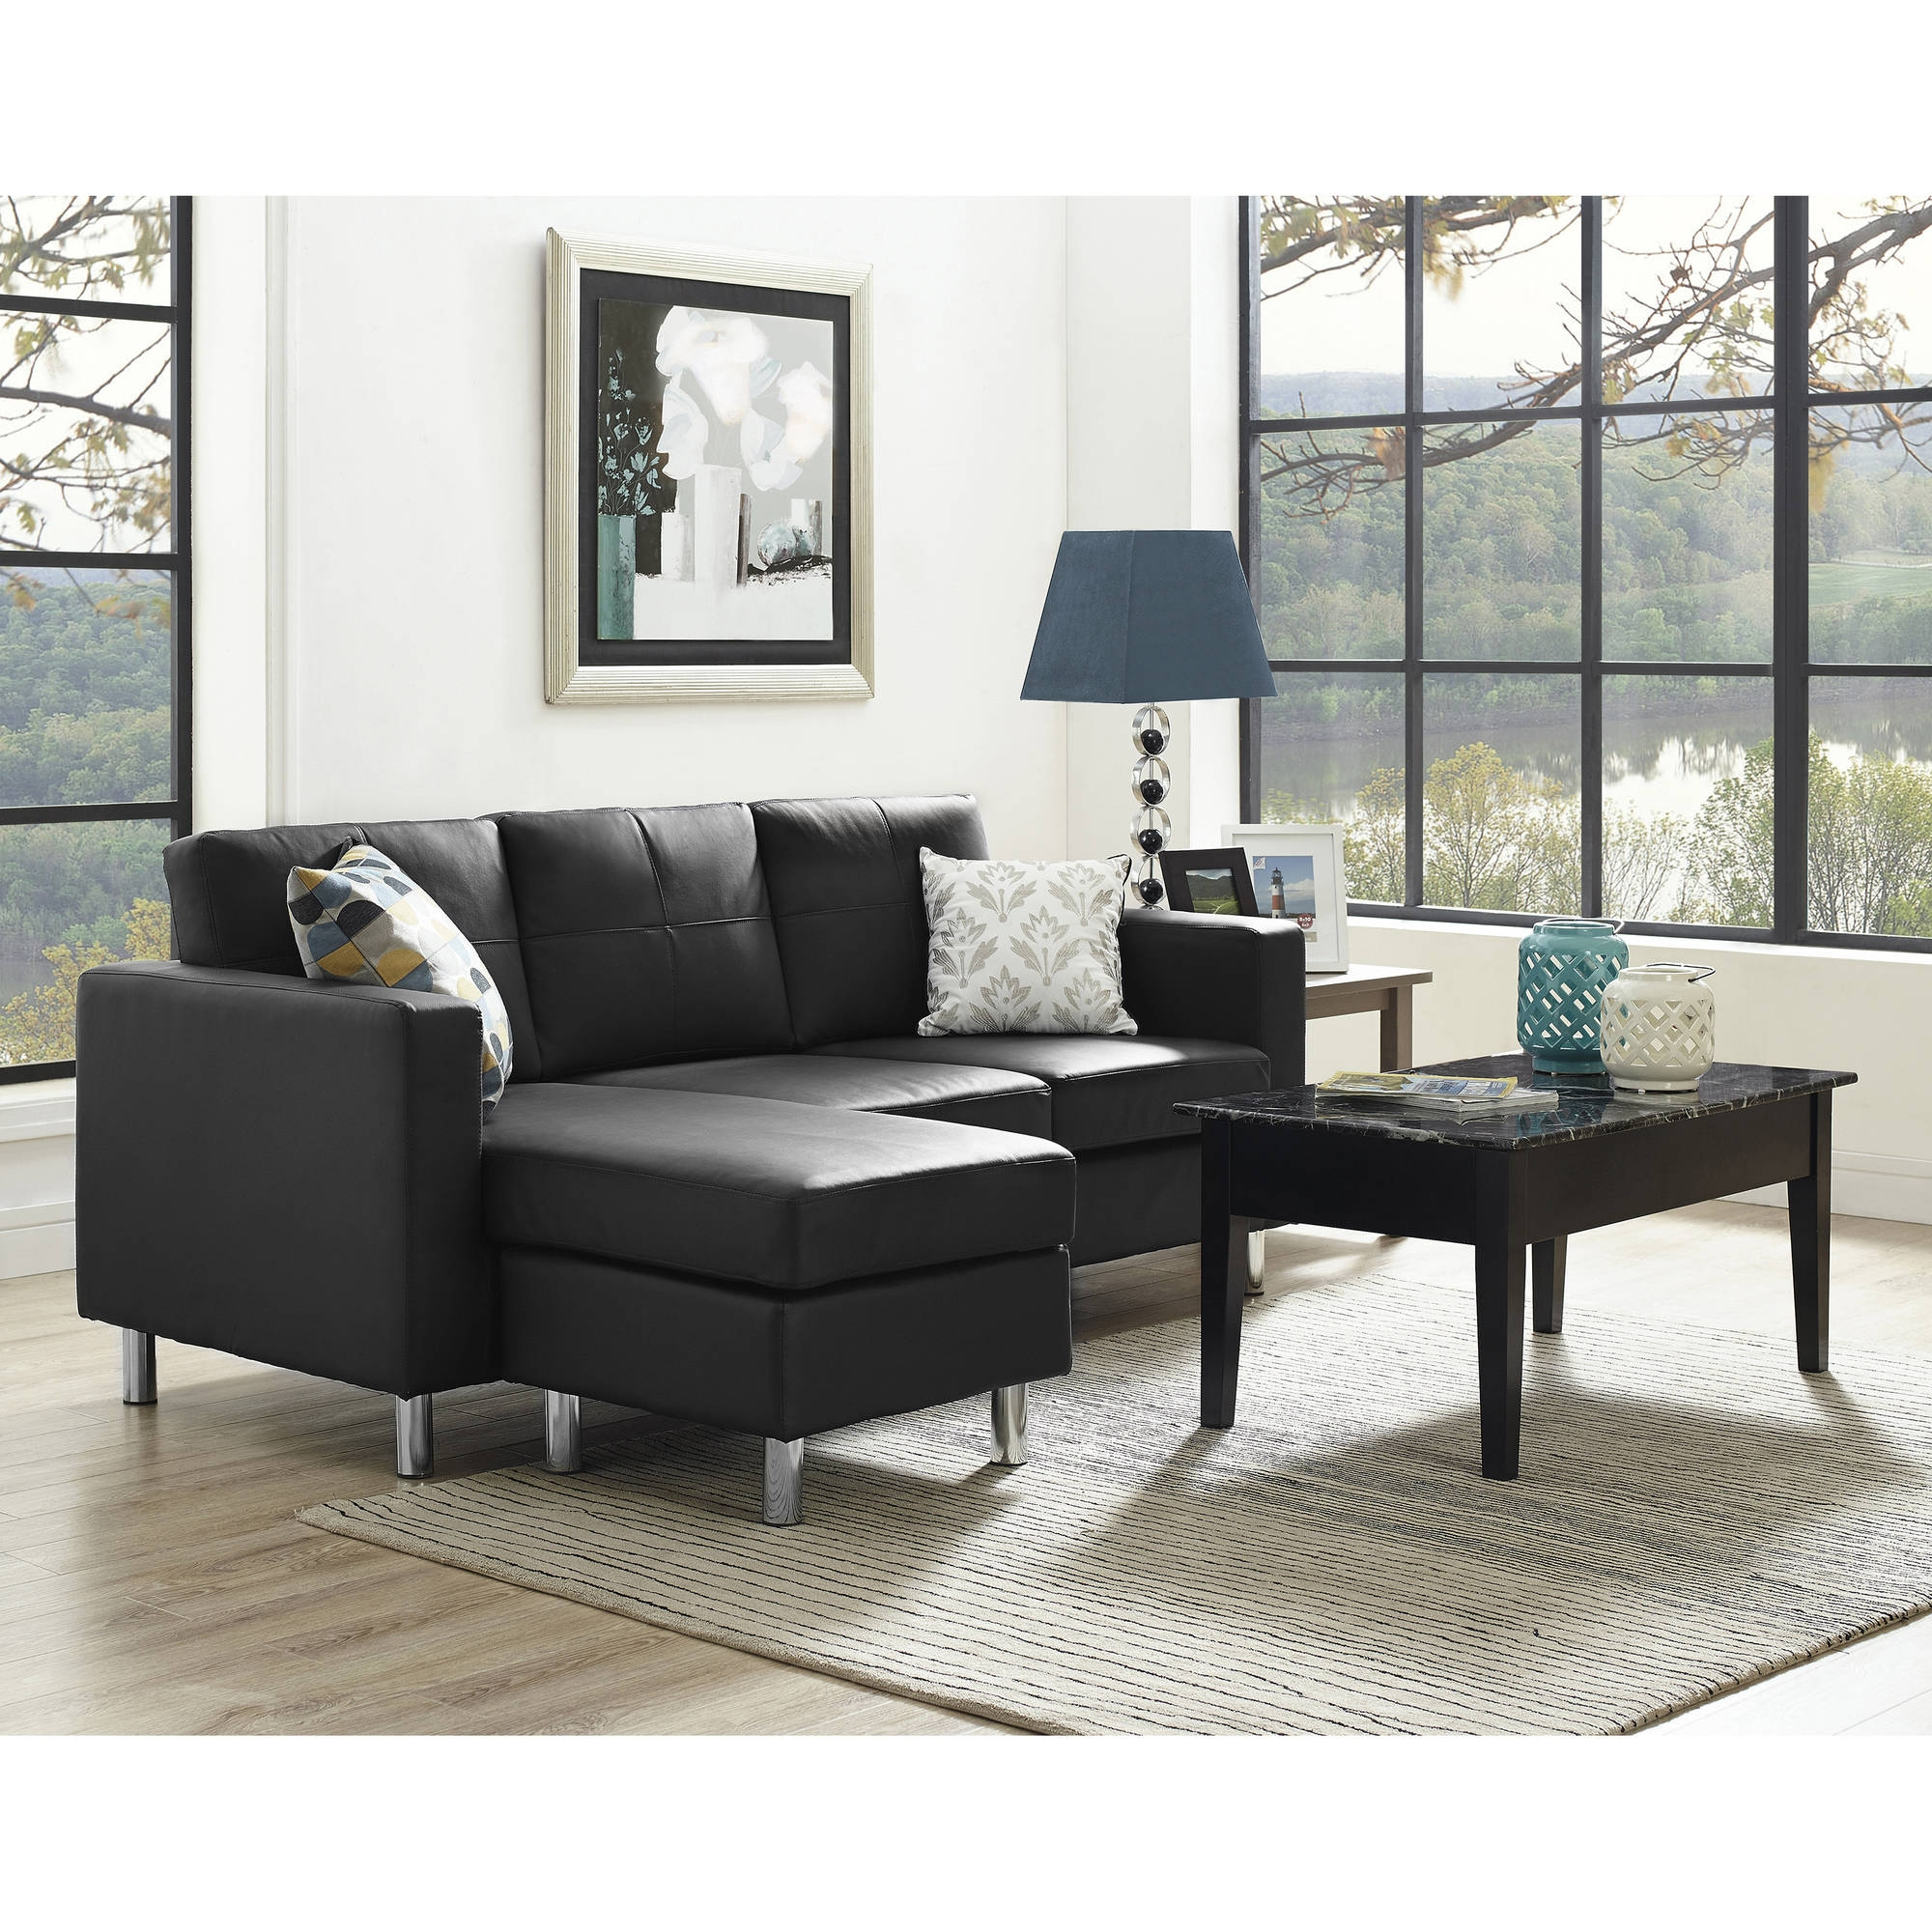 Dorel Living Small Spaces Configurable Sectional Sofa Multiple Pertaining To Small Sectional Sofa (#3 of 12)